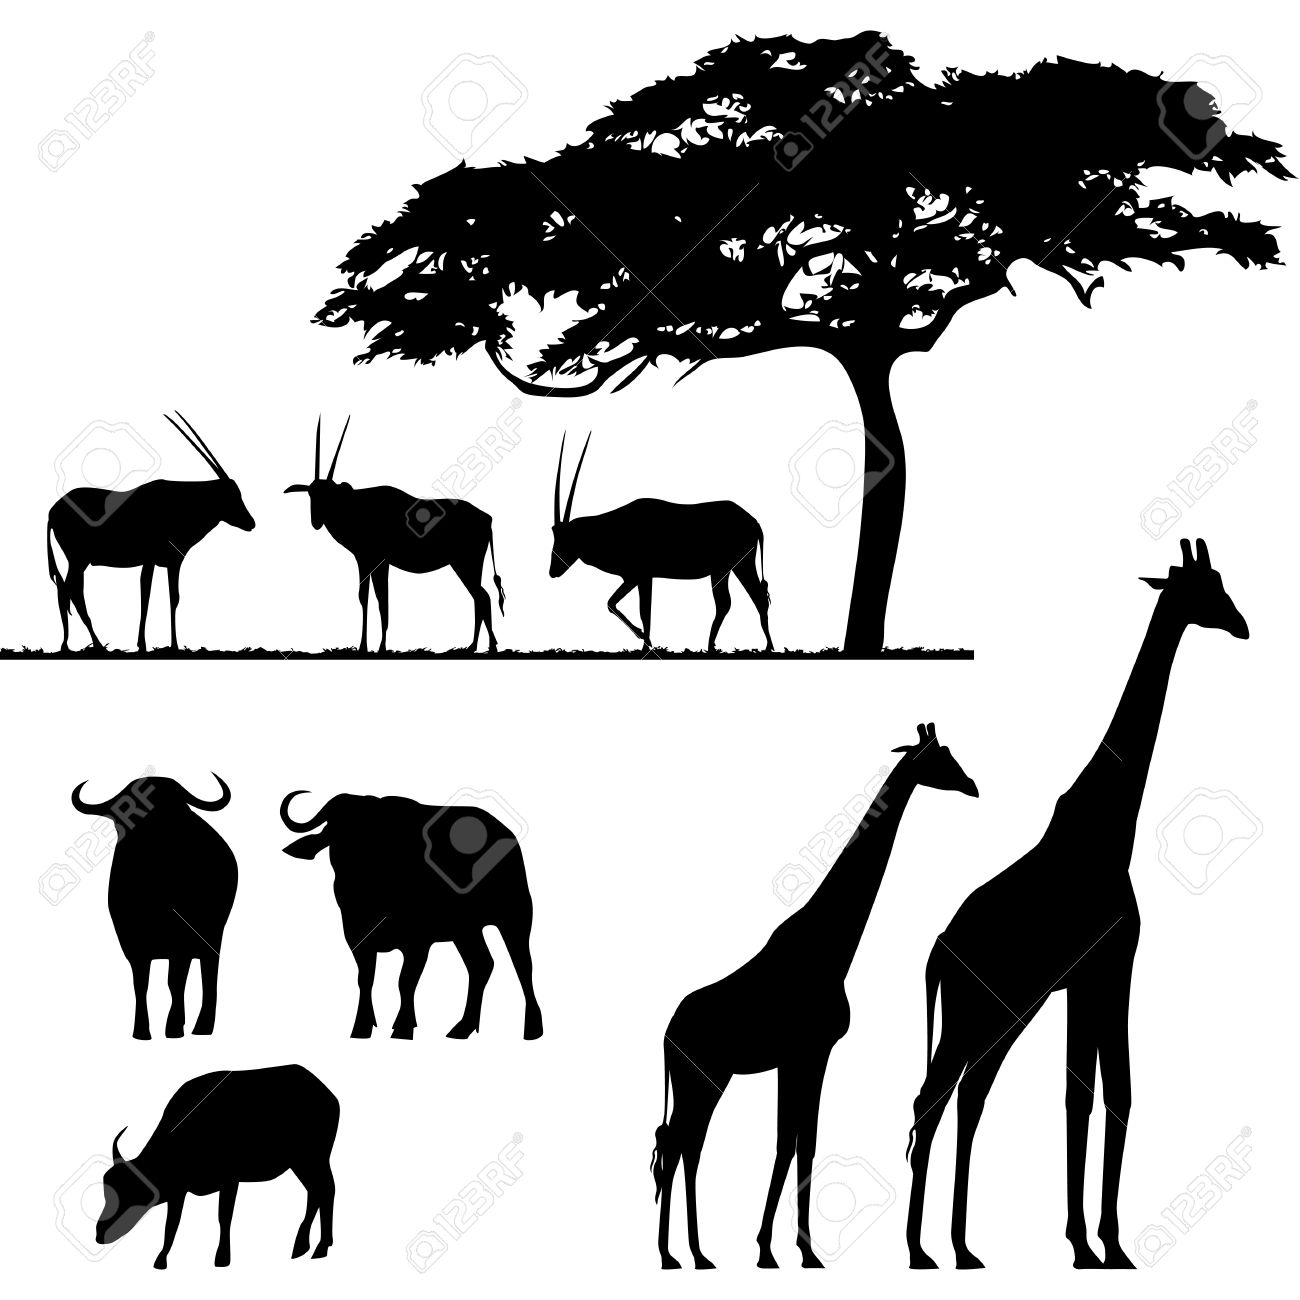 African Animals Vector Silhouettes Royalty Free Cliparts Vectors And Stock Illustration Image 9707213